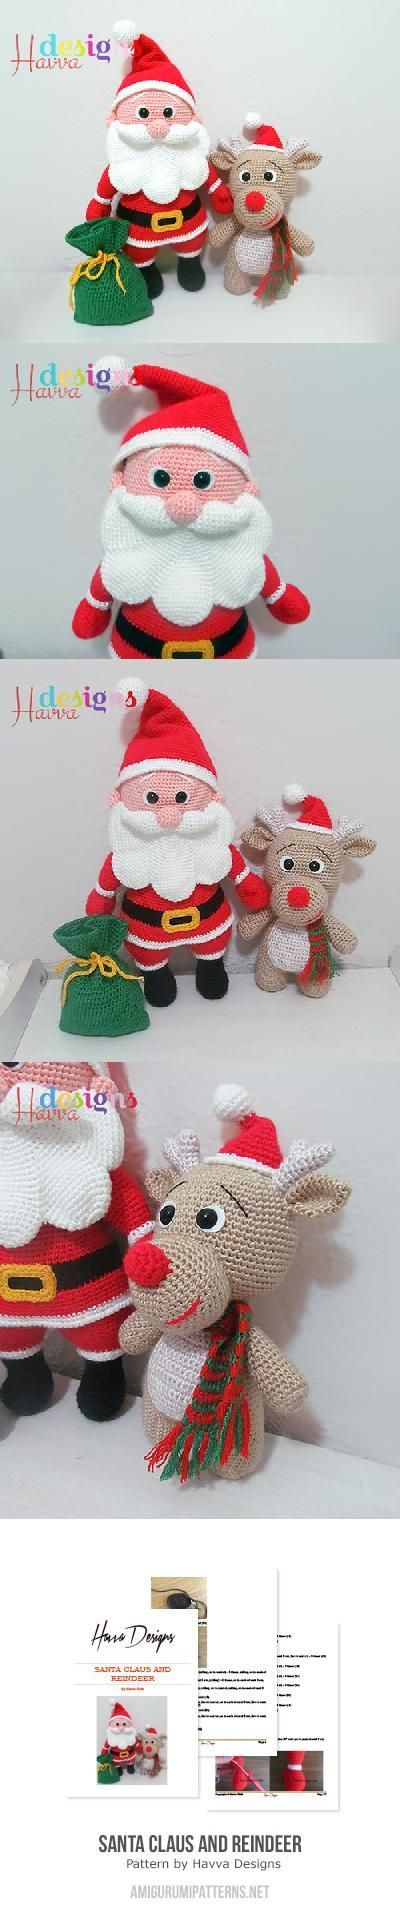 Santa+Claus+And+Reindeer+Amigurumi+Pattern